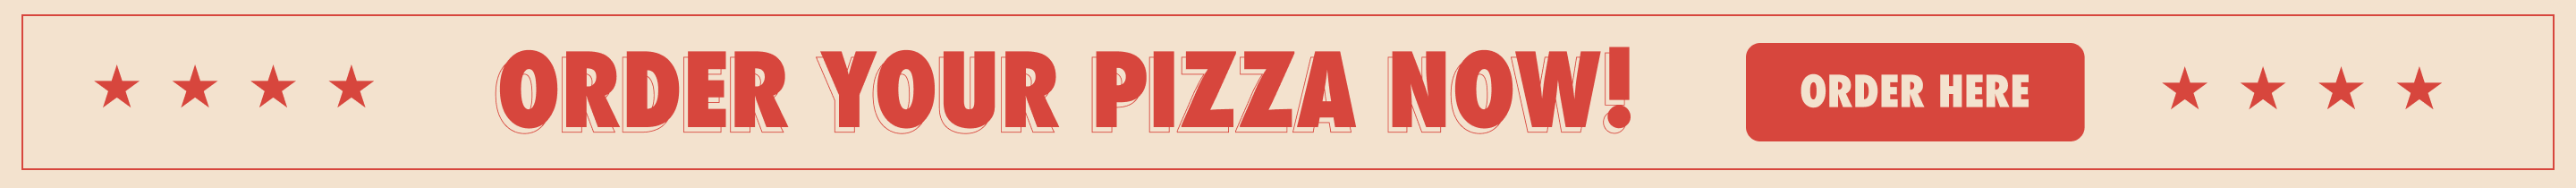 Banner that says Order Your Pizza Now! with four stars on the left and right